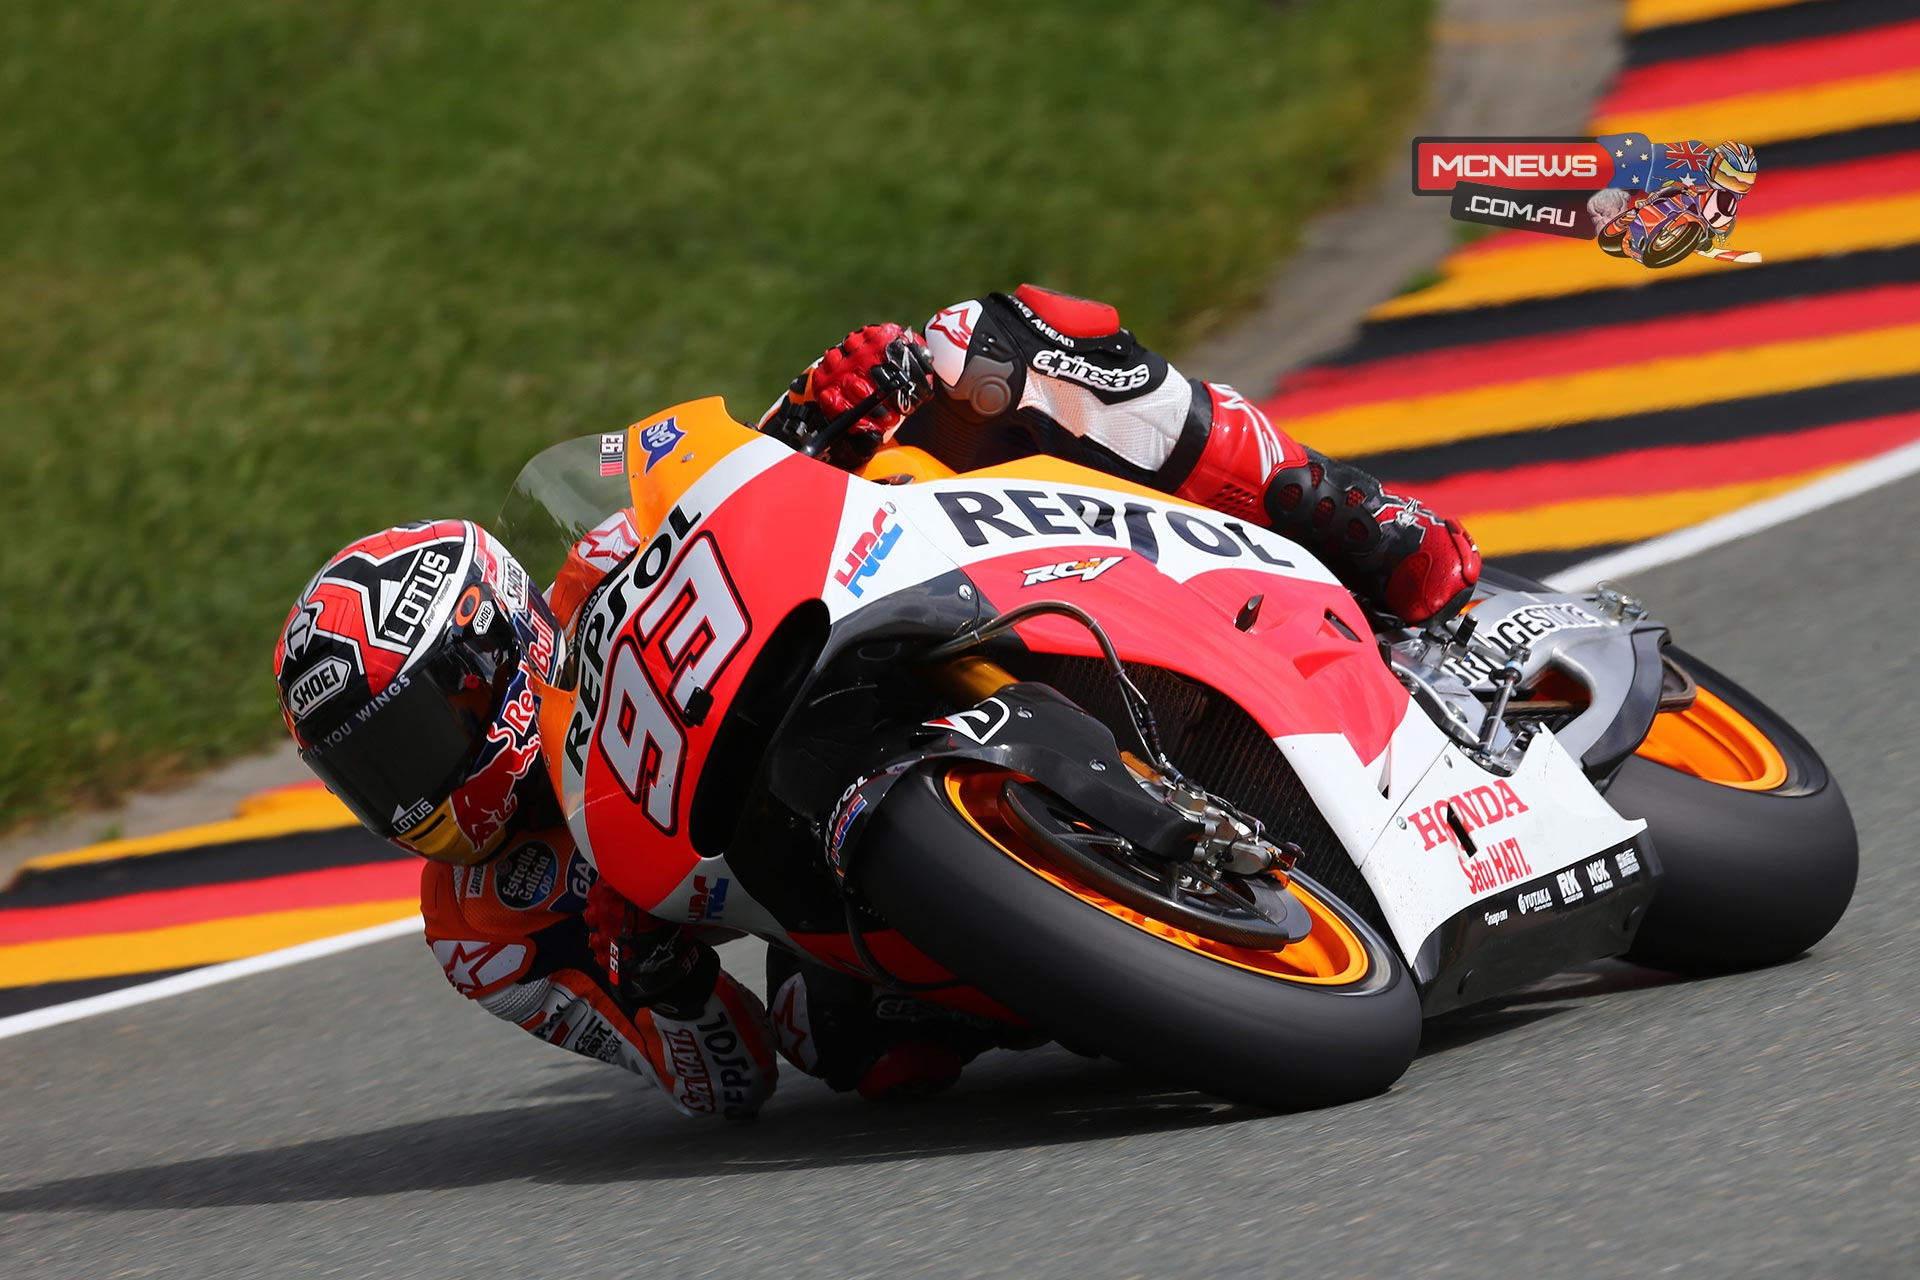 "Marc Marquez, Repsol Honda: pole position – 1m 20.937s - ""The weekend has been affected by the crash I suffered yesterday, but I kept my nerve and little by little we've been getting better. I felt good yesterday afternoon and I was much better this morning. In the few laps I did in FP4 I could see that we had a good pace and a chance to fight for pole position. With the first tyre I didn't feel entirely comfortable, but with the second one I had a good feeling and could see that there was good grip, so I decided to push a little more and put in a strong lap. Starting from the front is important for the race tomorrow, because this is a circuit where it is difficult to overtake. We will try and keep up the pace from practice, which I think has been good."""